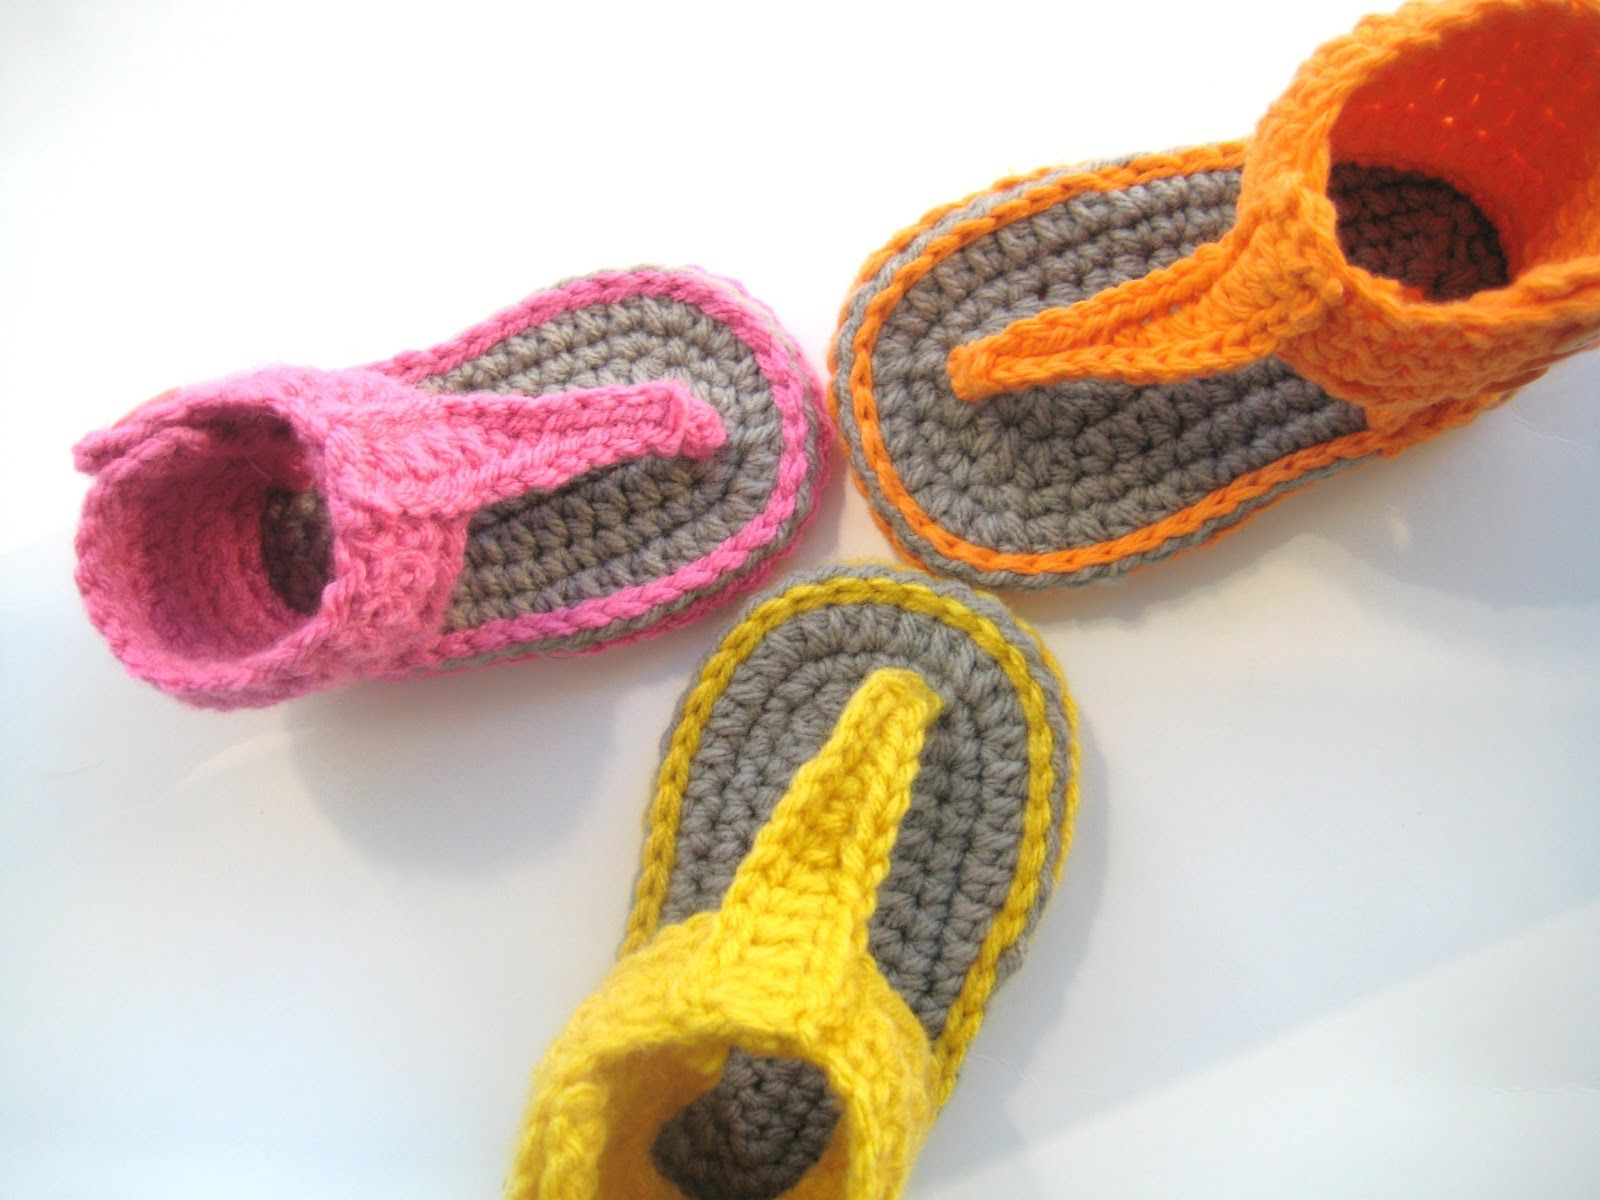 13dc4d49edee0 free baby crocheted sandals pattern | Crochet Dreamz: Gladiator ...